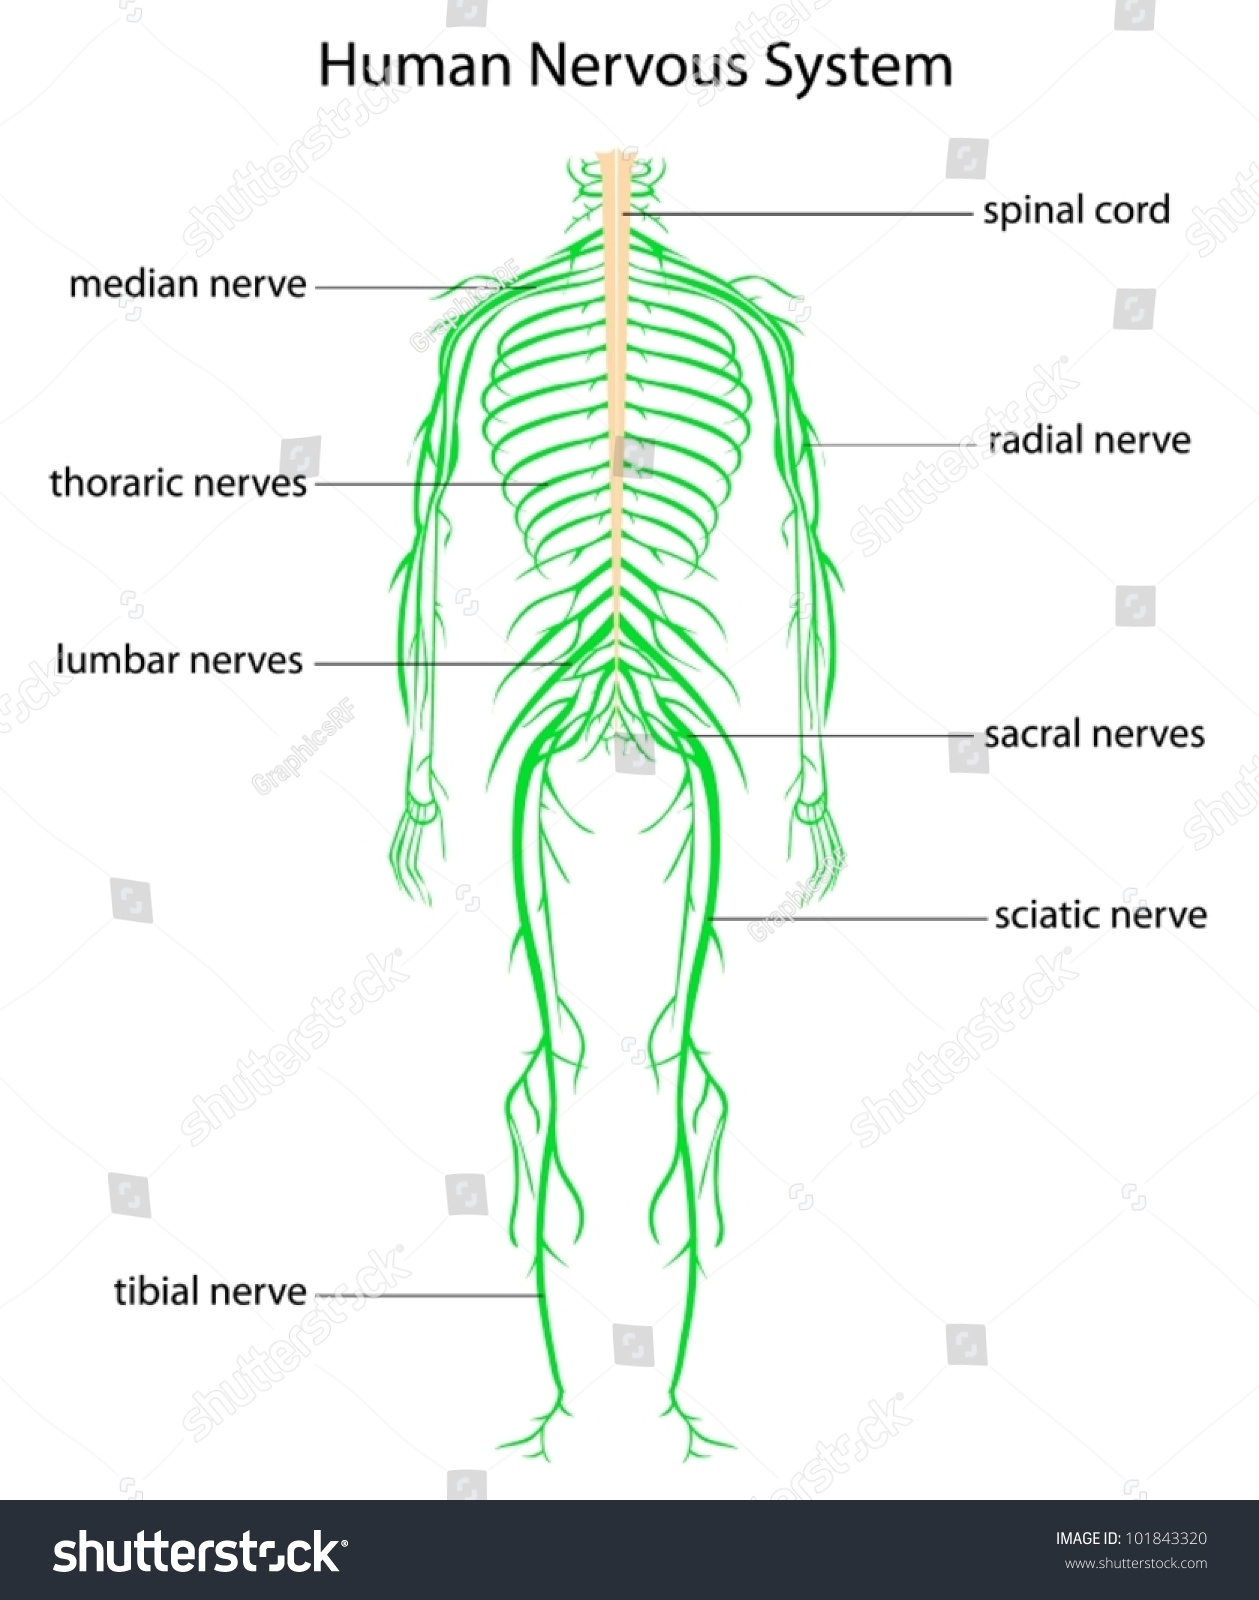 Illustration Human Nervous System Labels Stock Vector